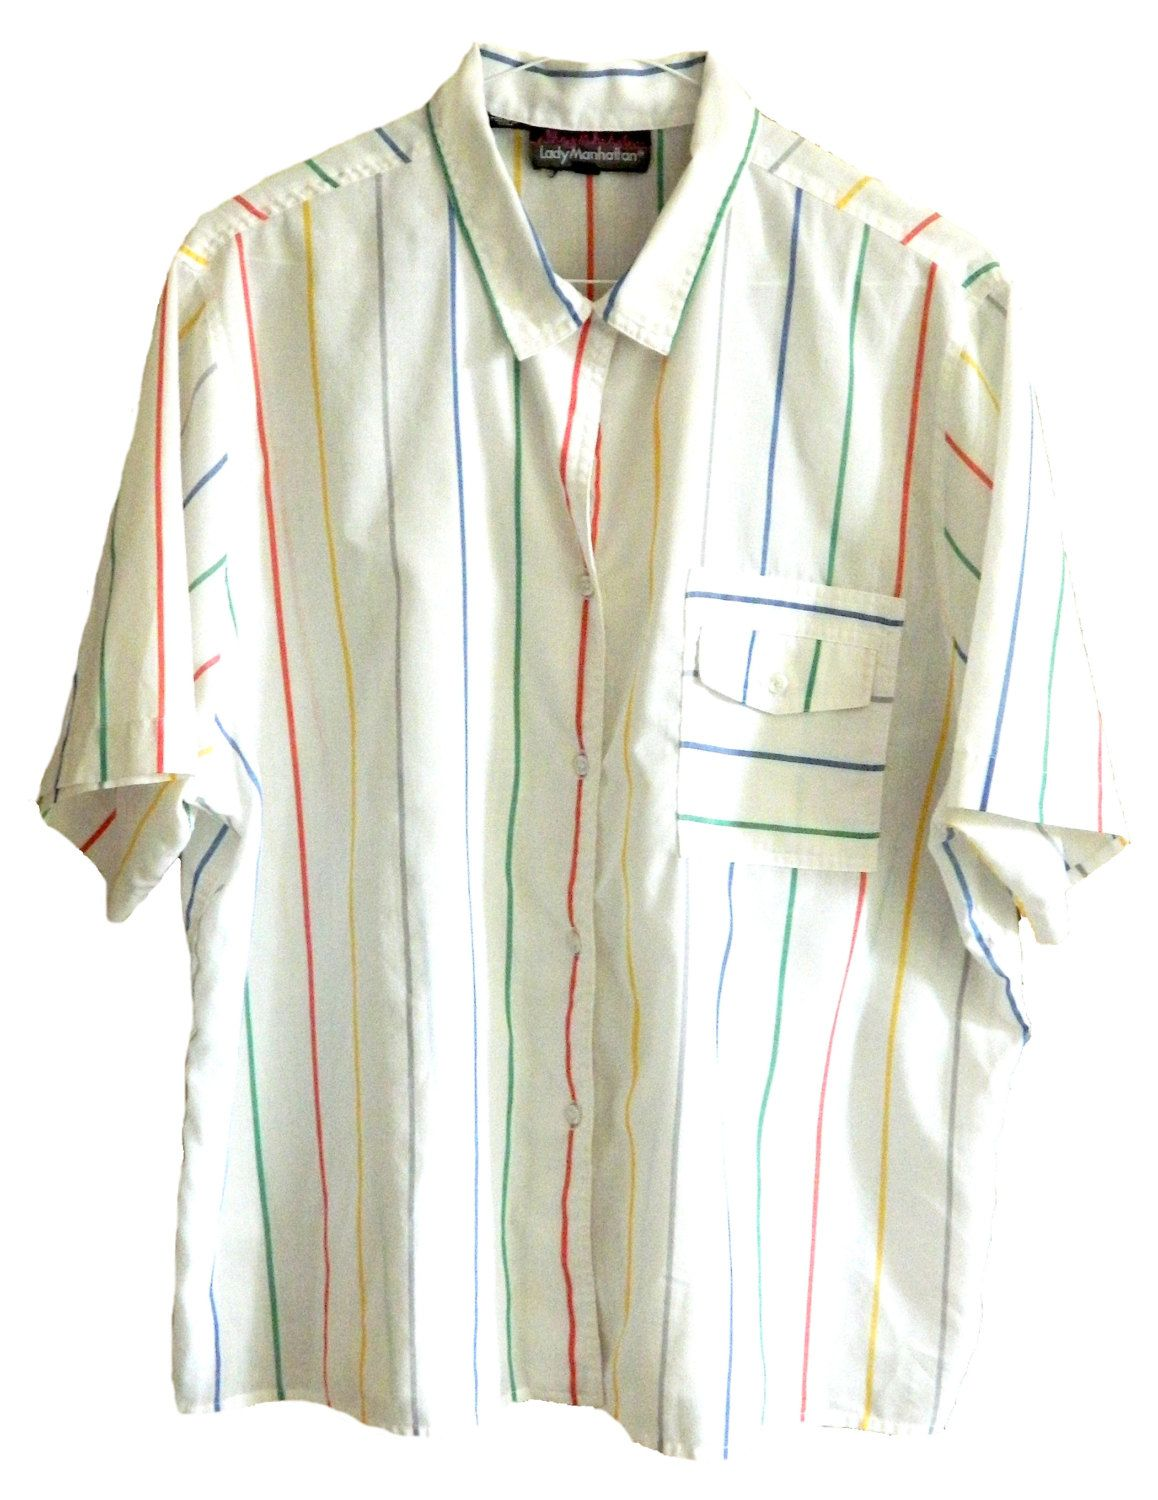 cf4871b63 Lady Manhattan mens womens vintage short sleeve white and colorful rainbow striped  button up shirt oversized baggy size 18 front pocket by ...